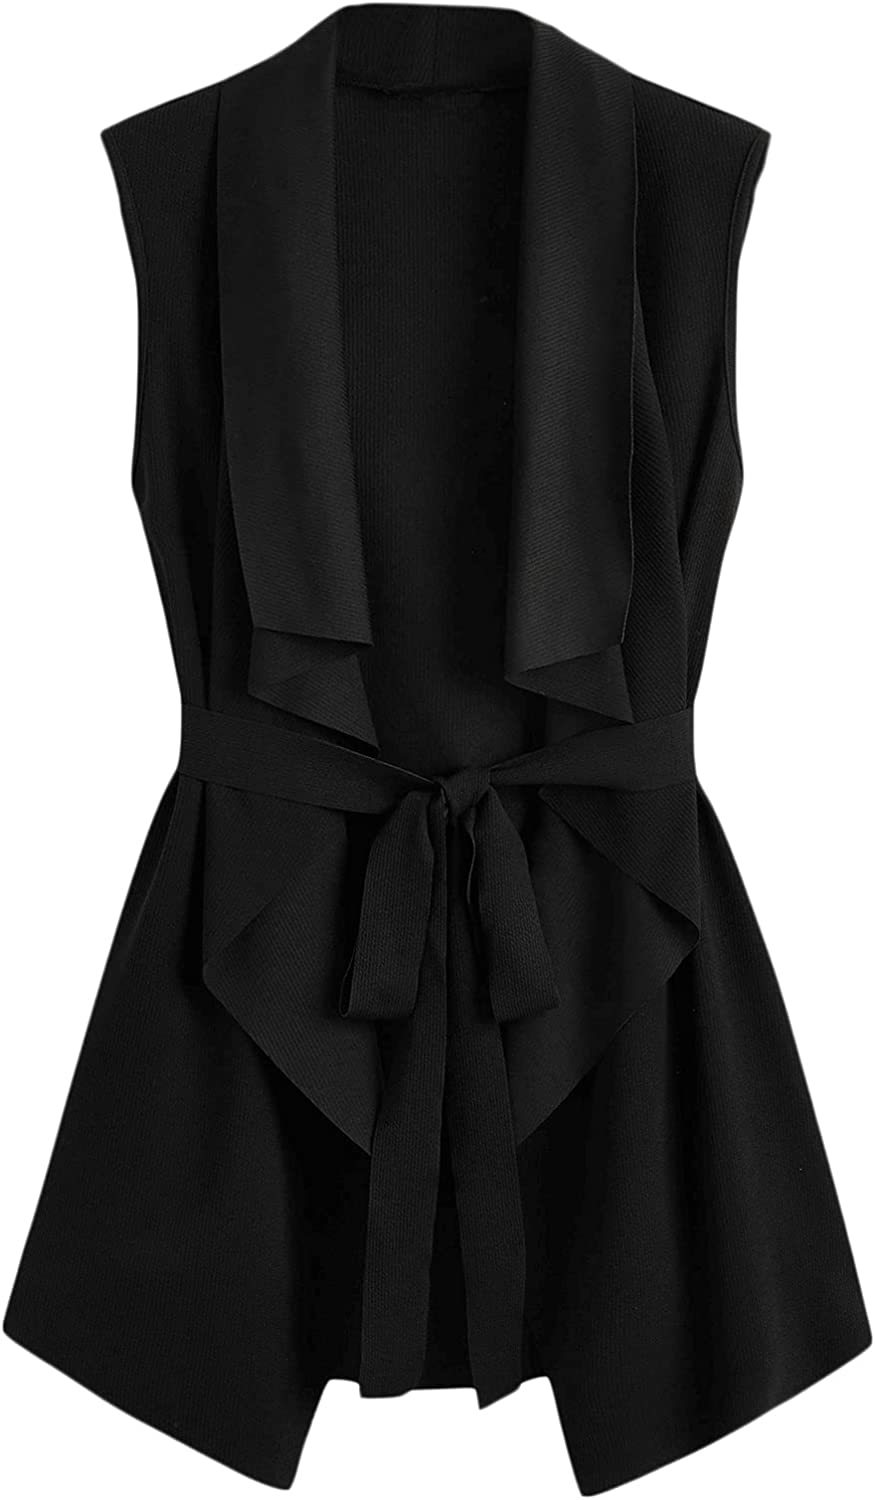 SOLY HUX Women's Plus Size Sleeveless Lapel Open Front Vest Jacket Cardigan with Belted